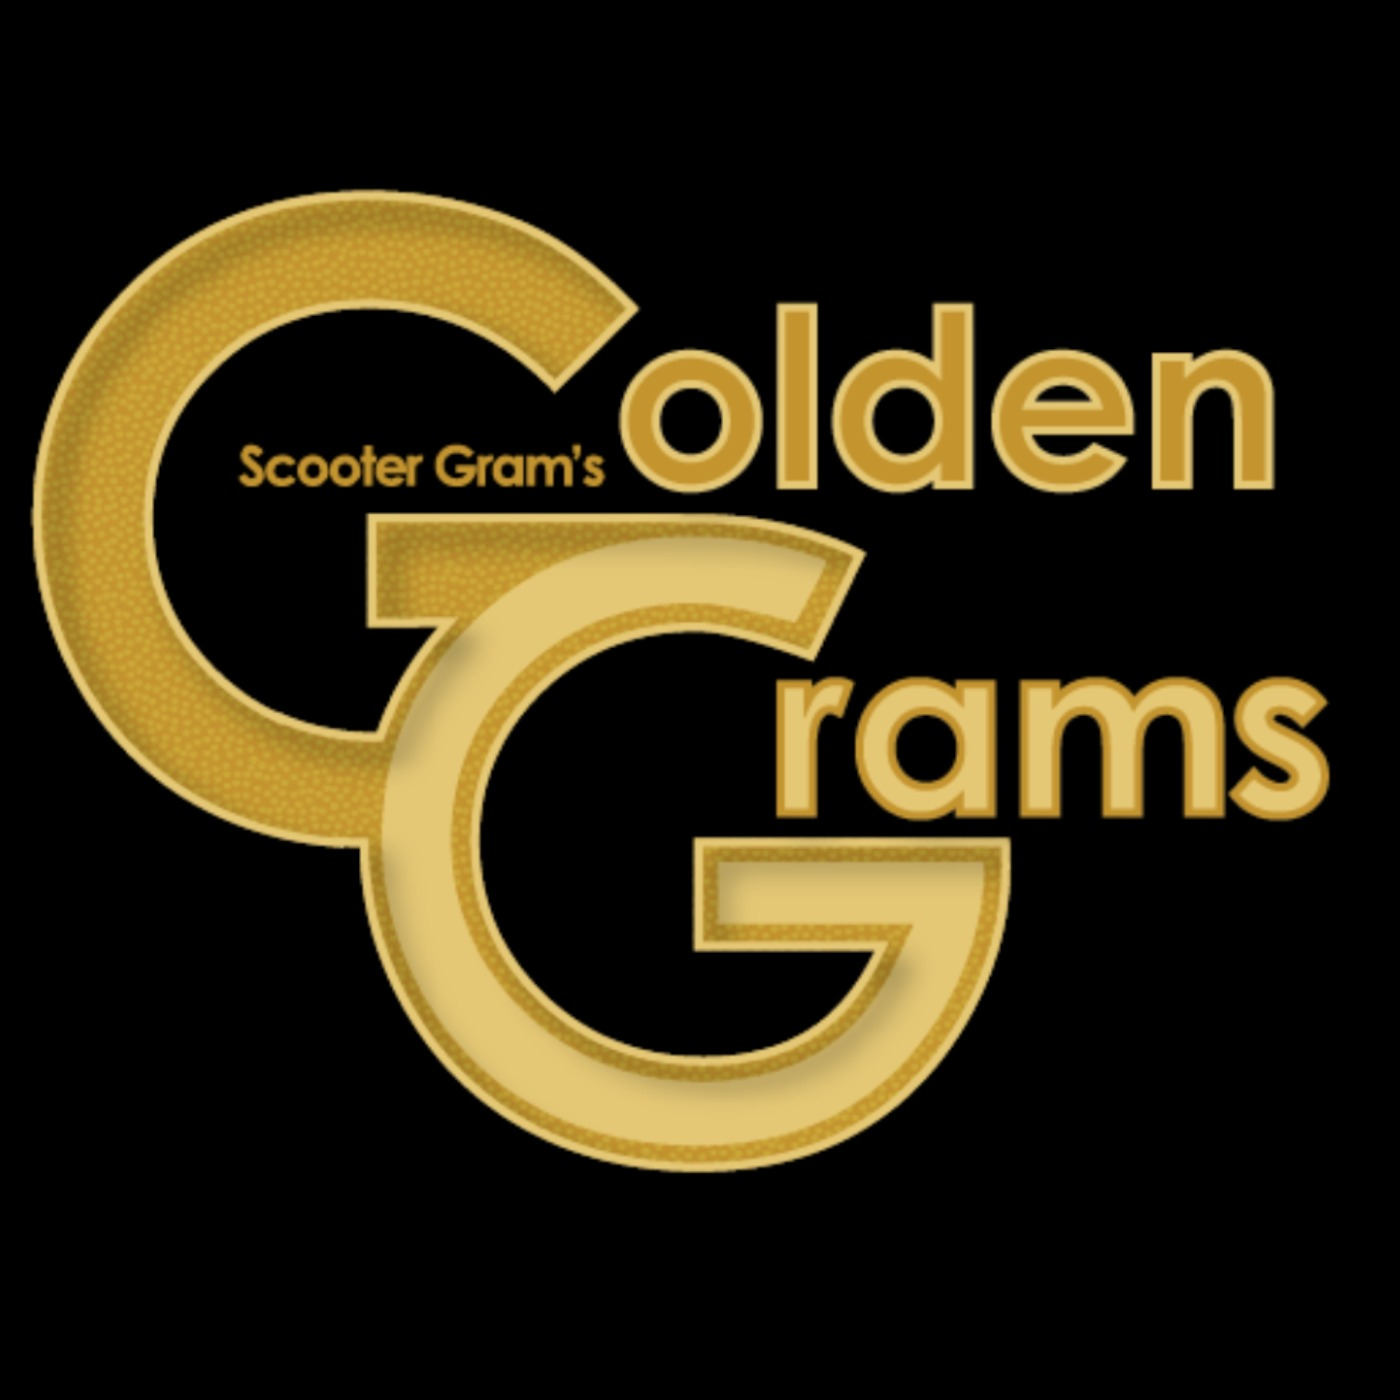 Scooter Gram's Golden Grams